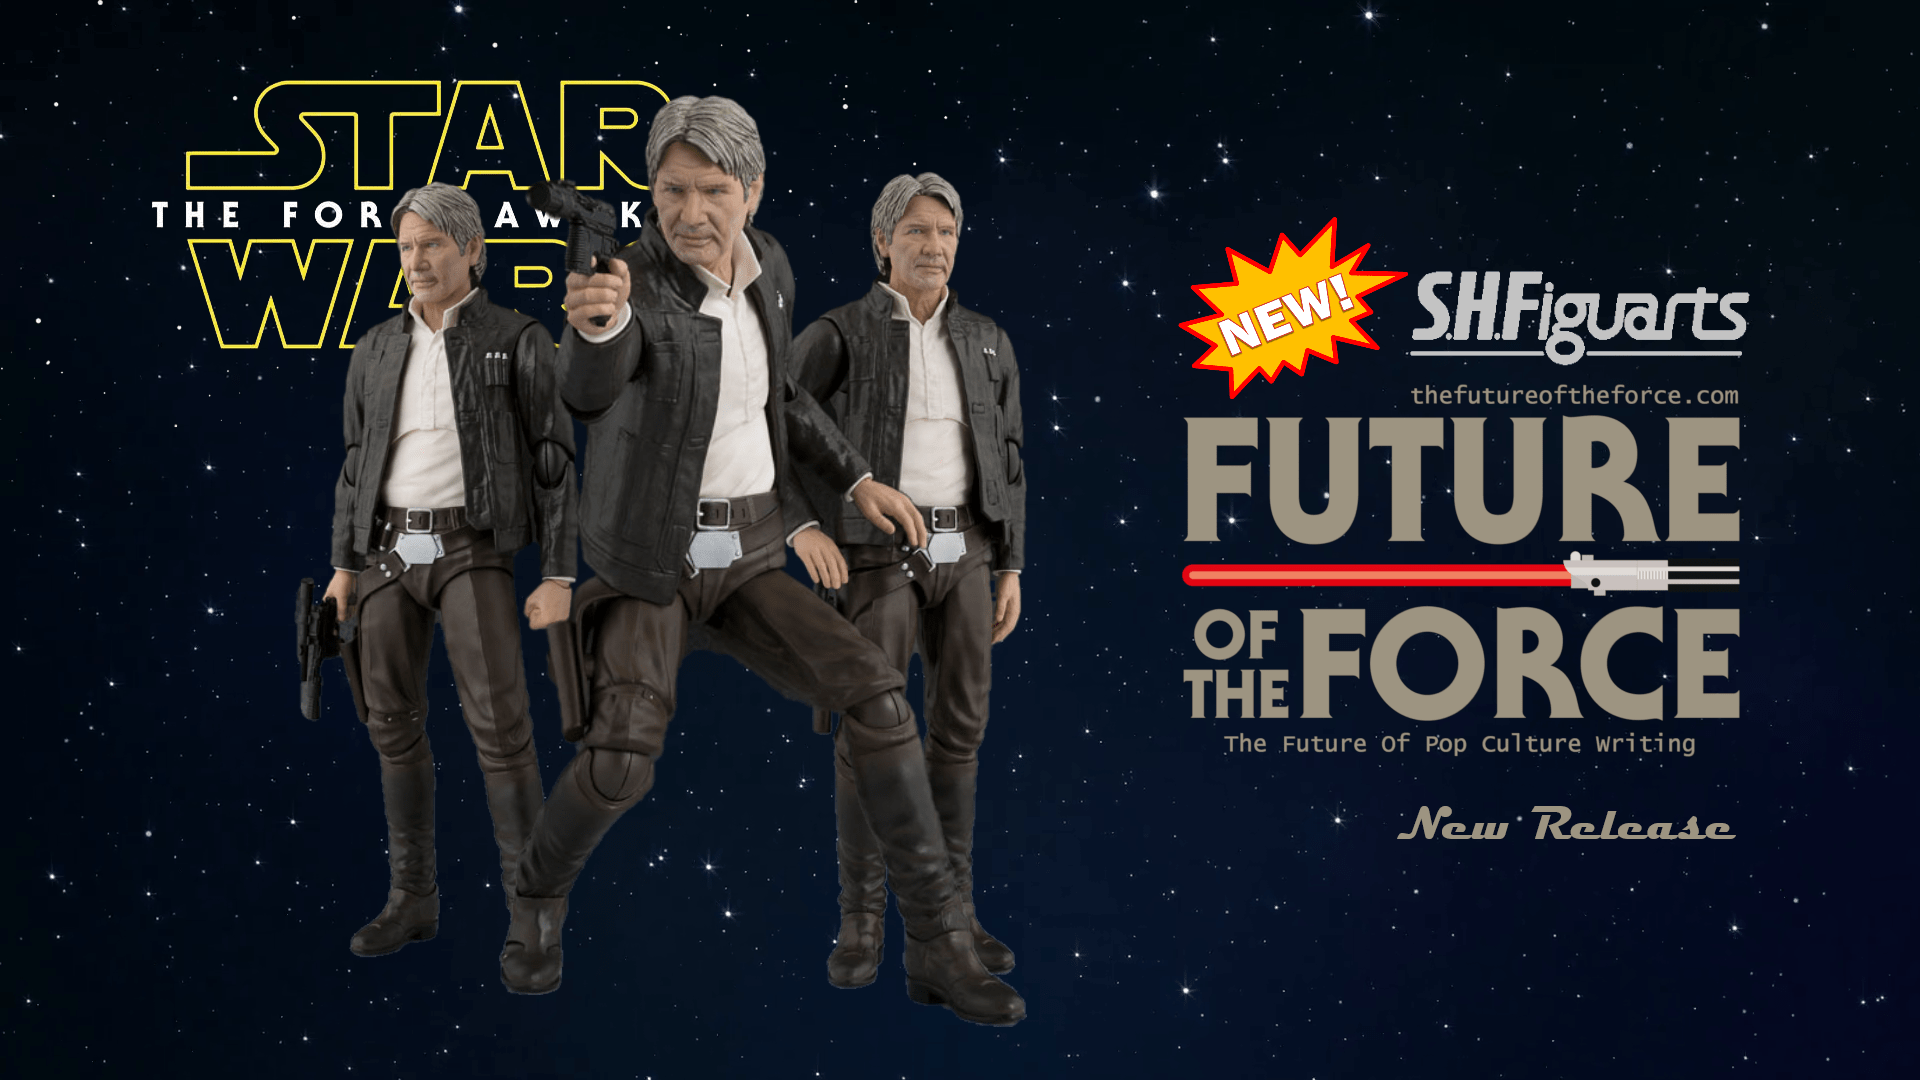 S.H. Figuarts News | Han Solo Star Wars: The Force Awakens in Production